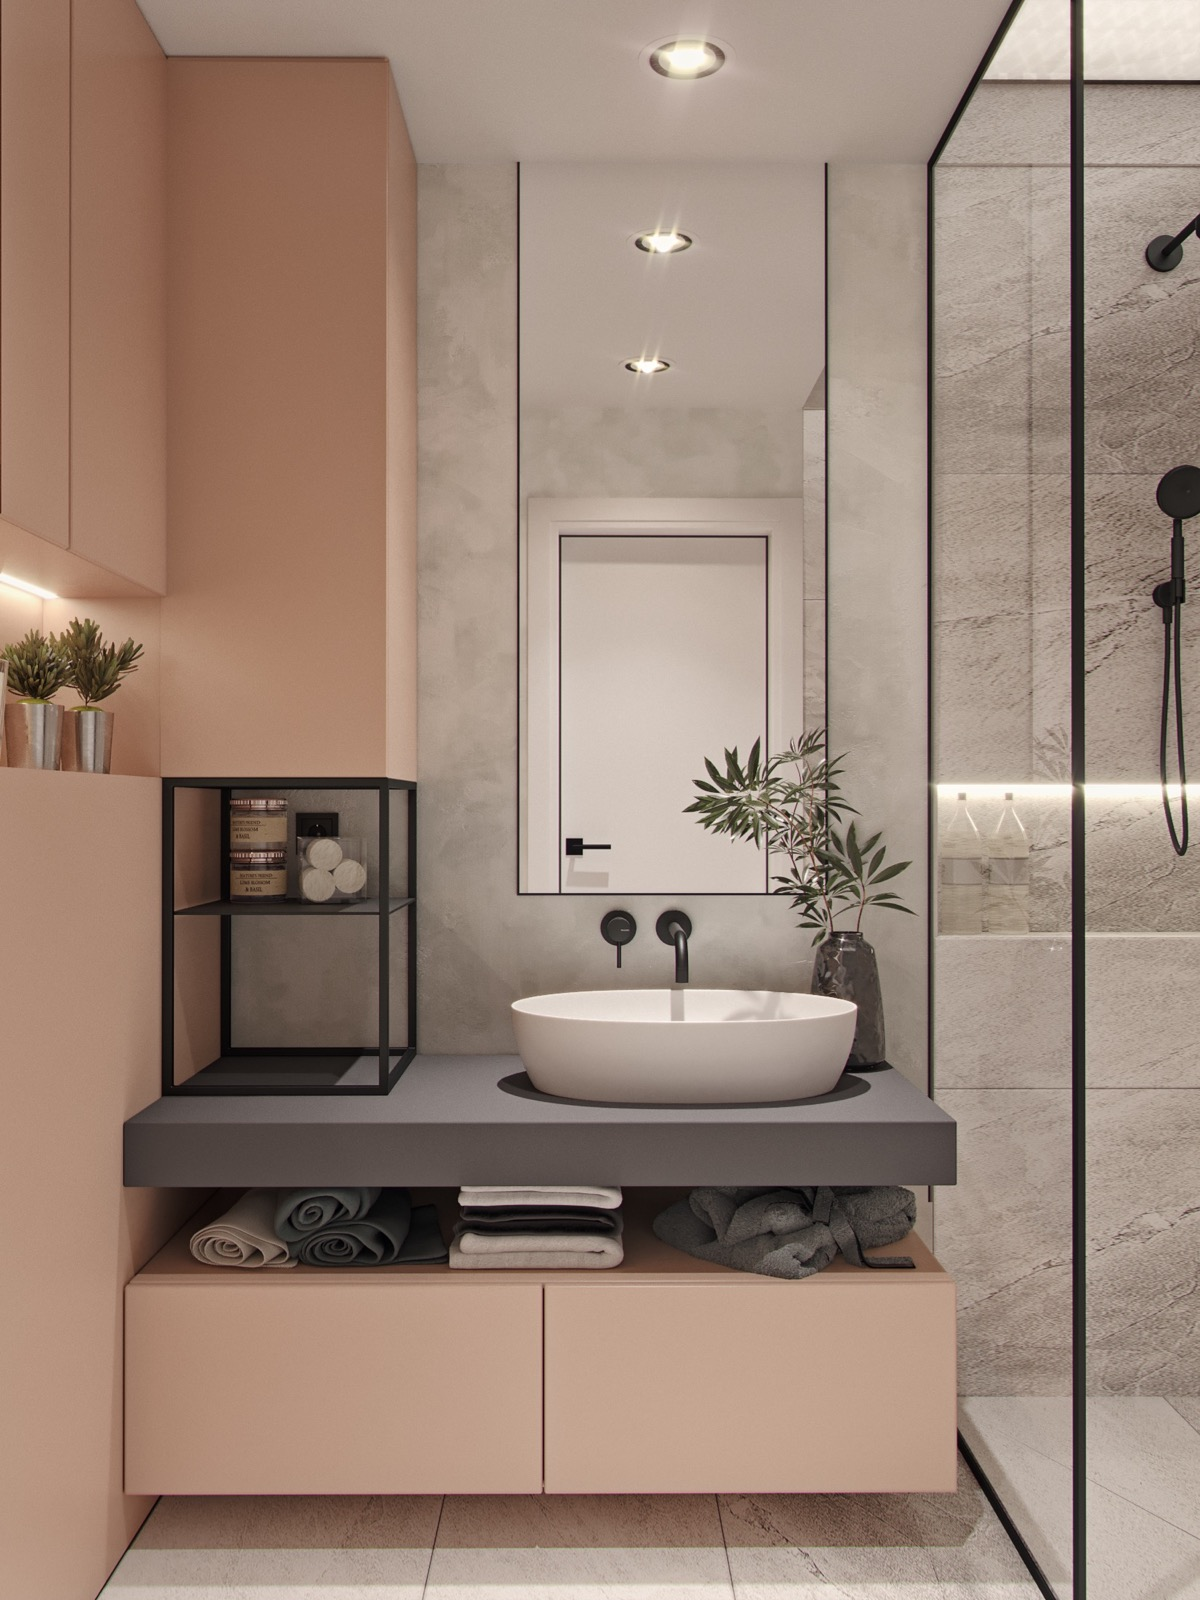 40 Modern Bathroom Vanities That Overflow With Style images 34